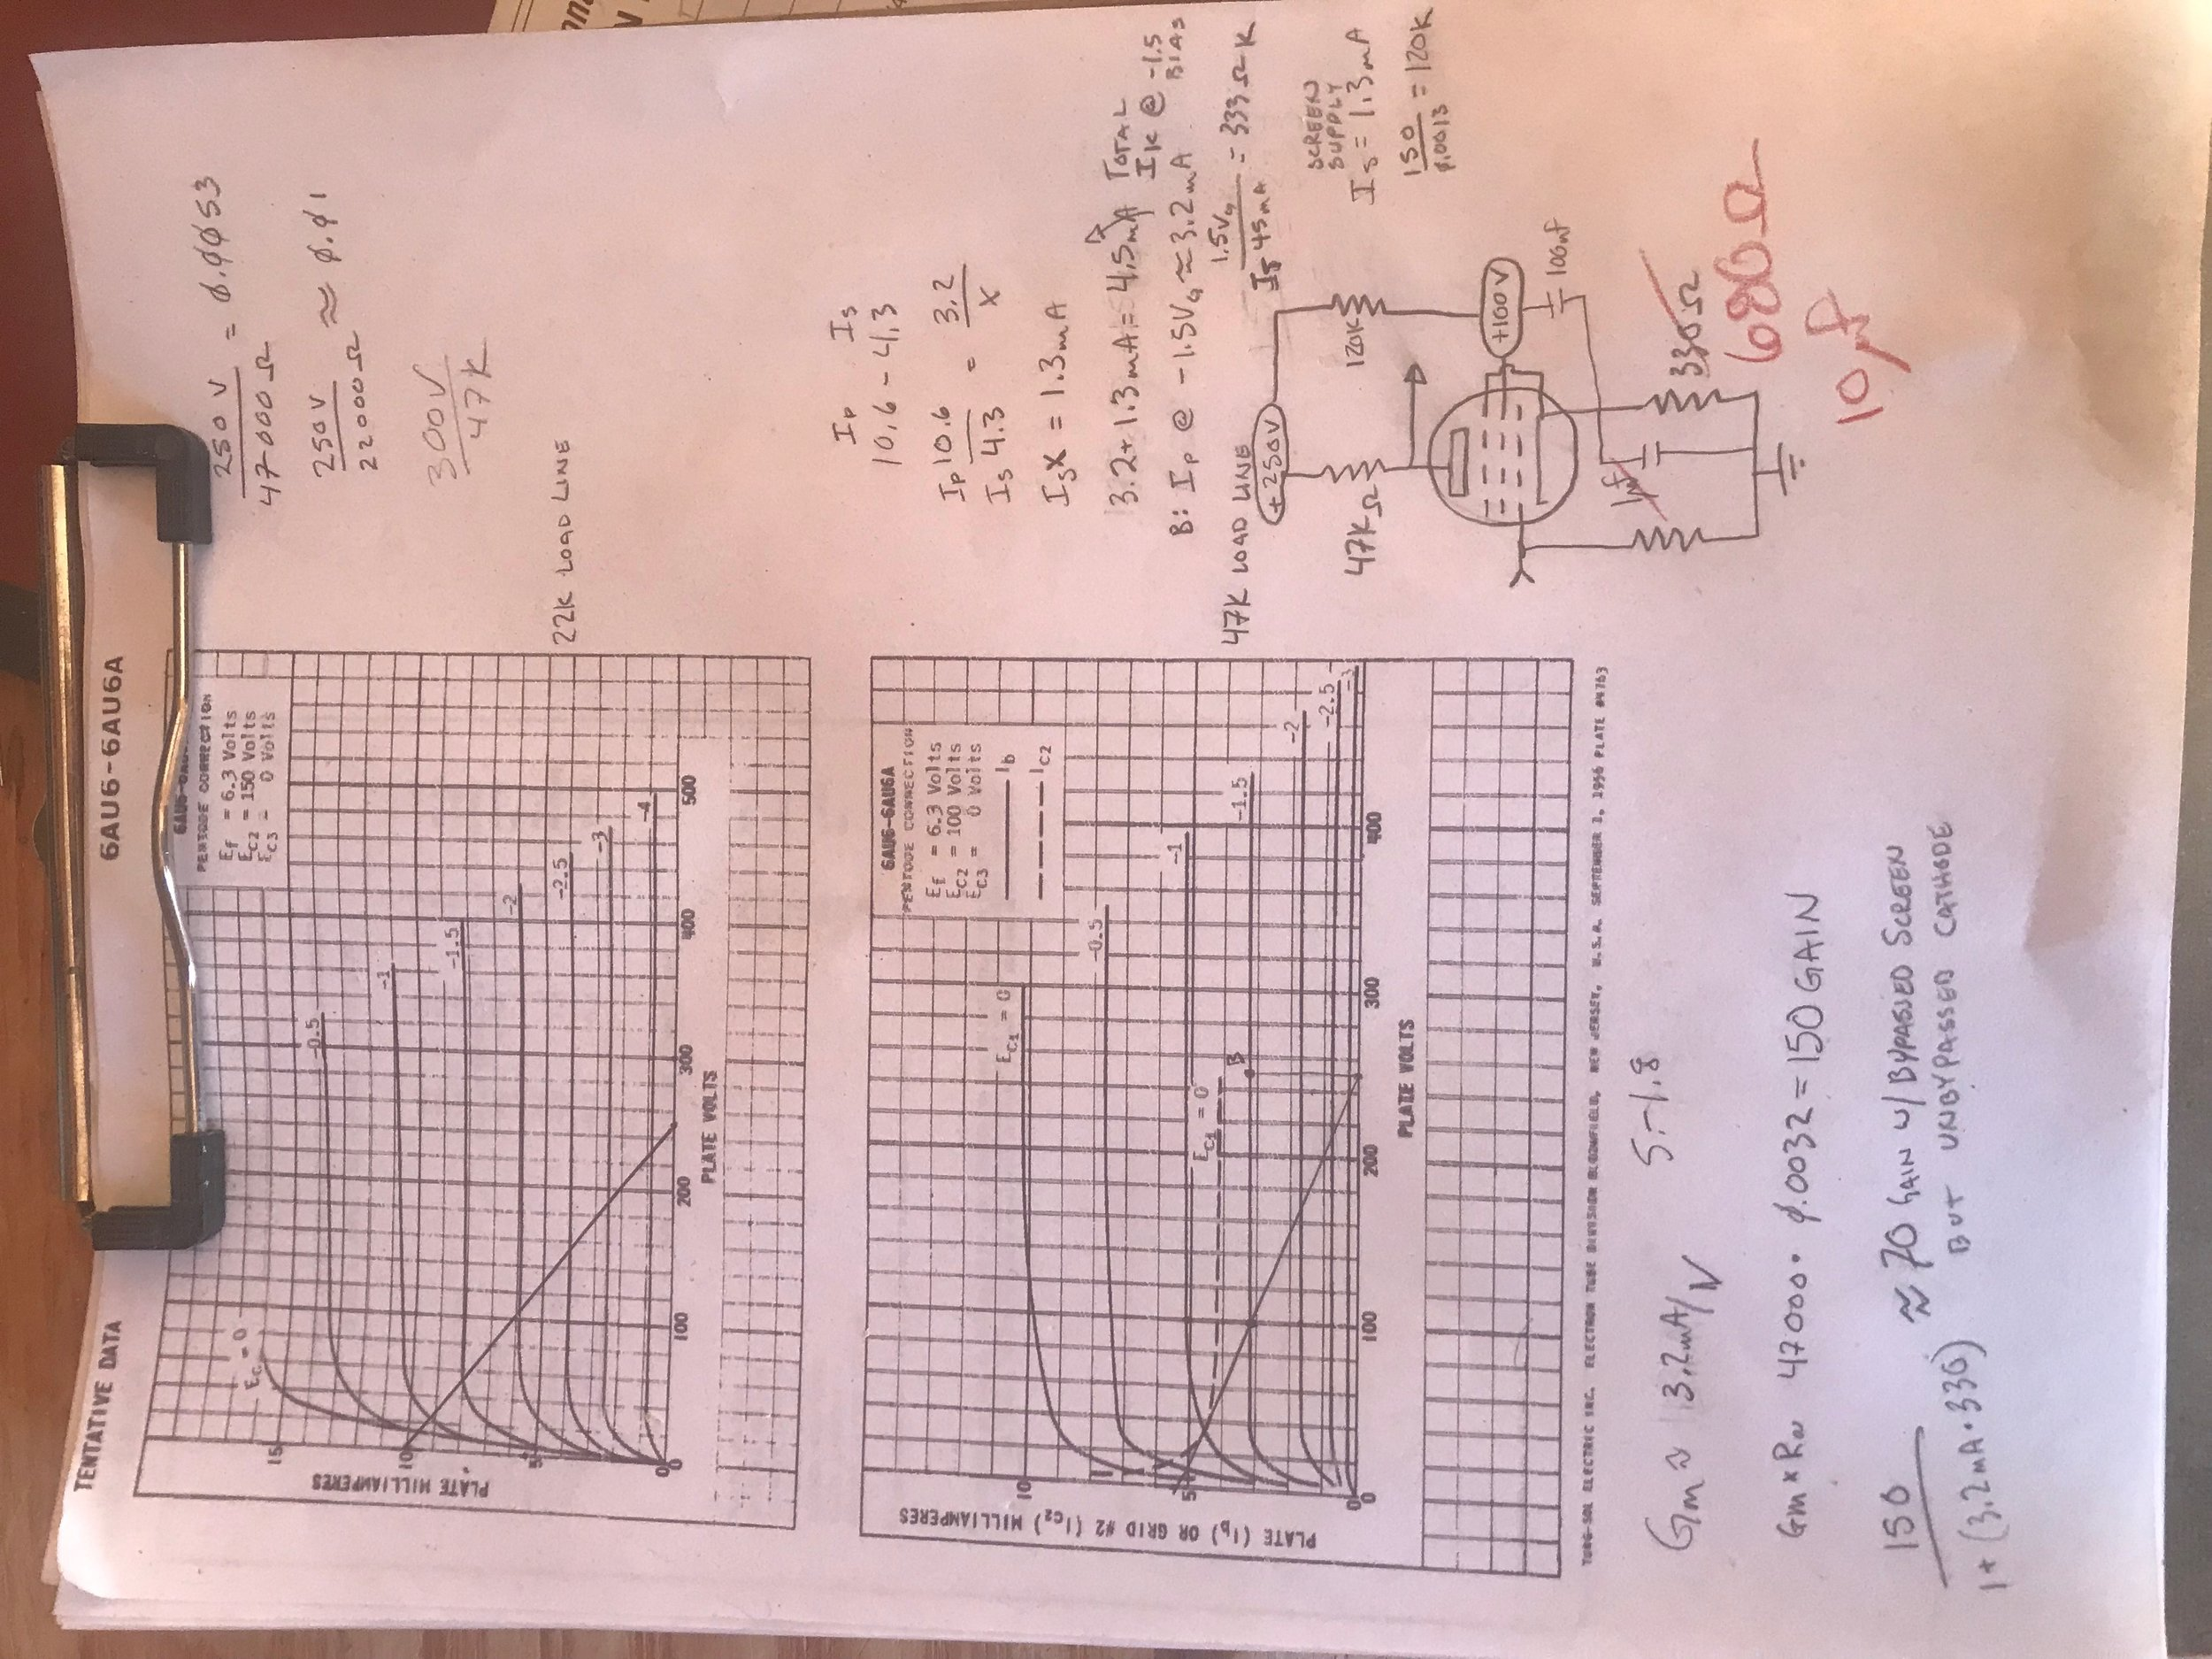 Plotting load lines for the 6AU6A